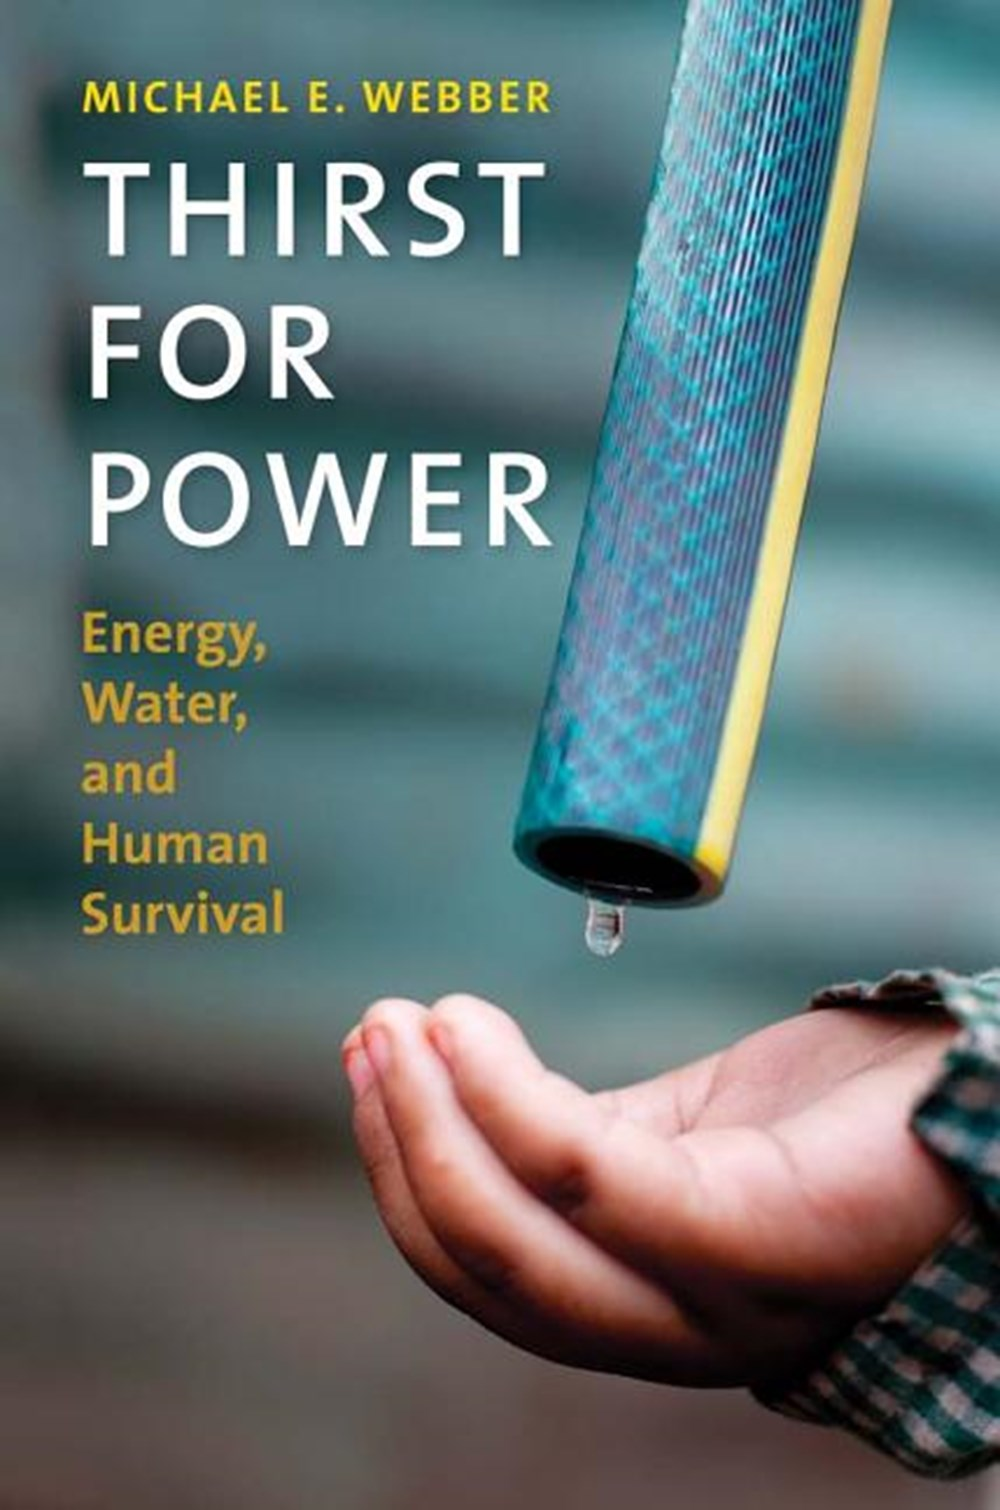 Thirst for Power Energy, Water, and Human Survival